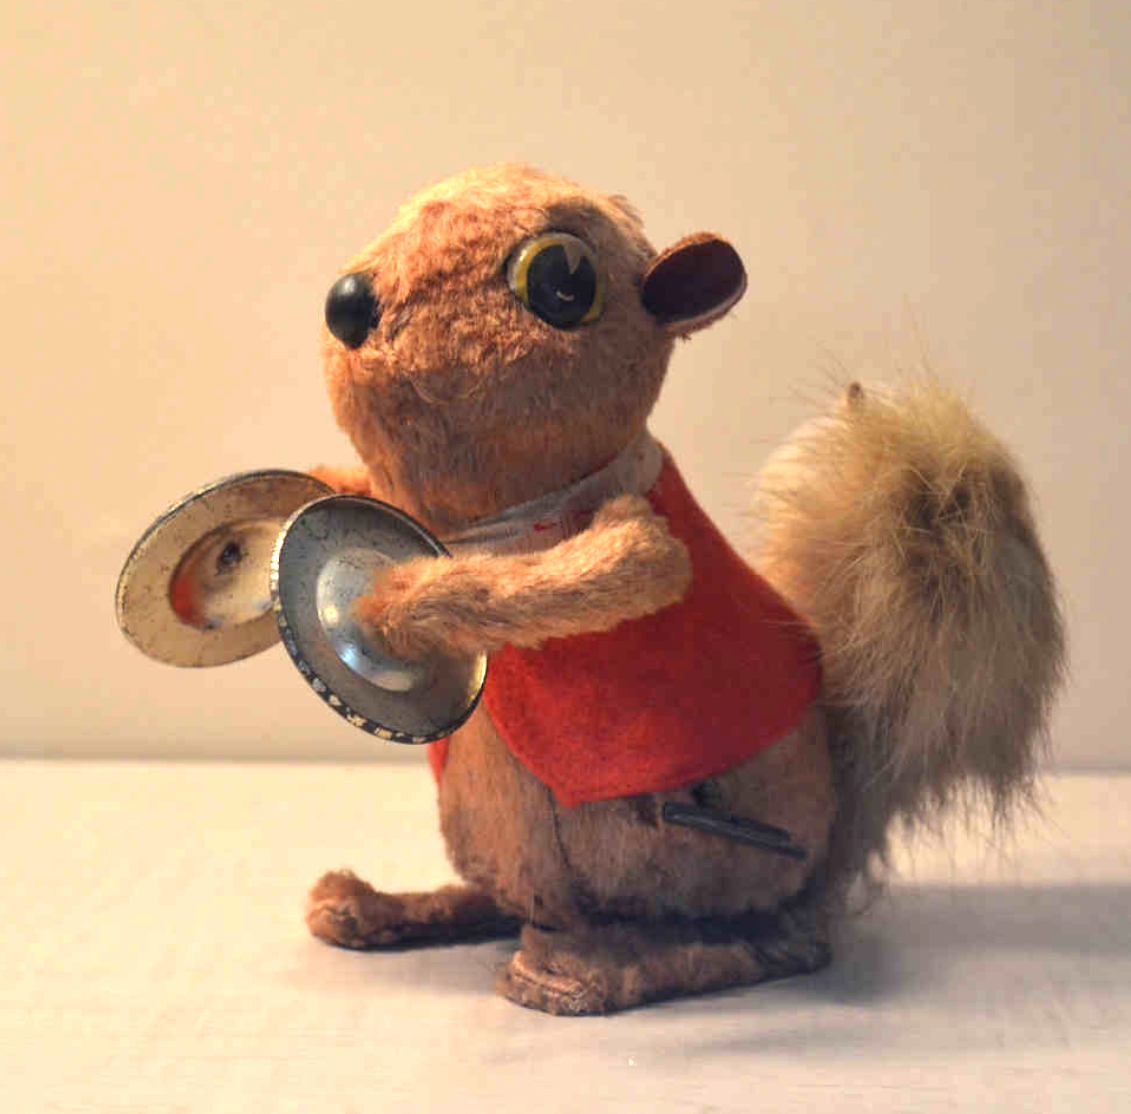 Toy: Windup Brown Squirrel. SQRL 13.09.01